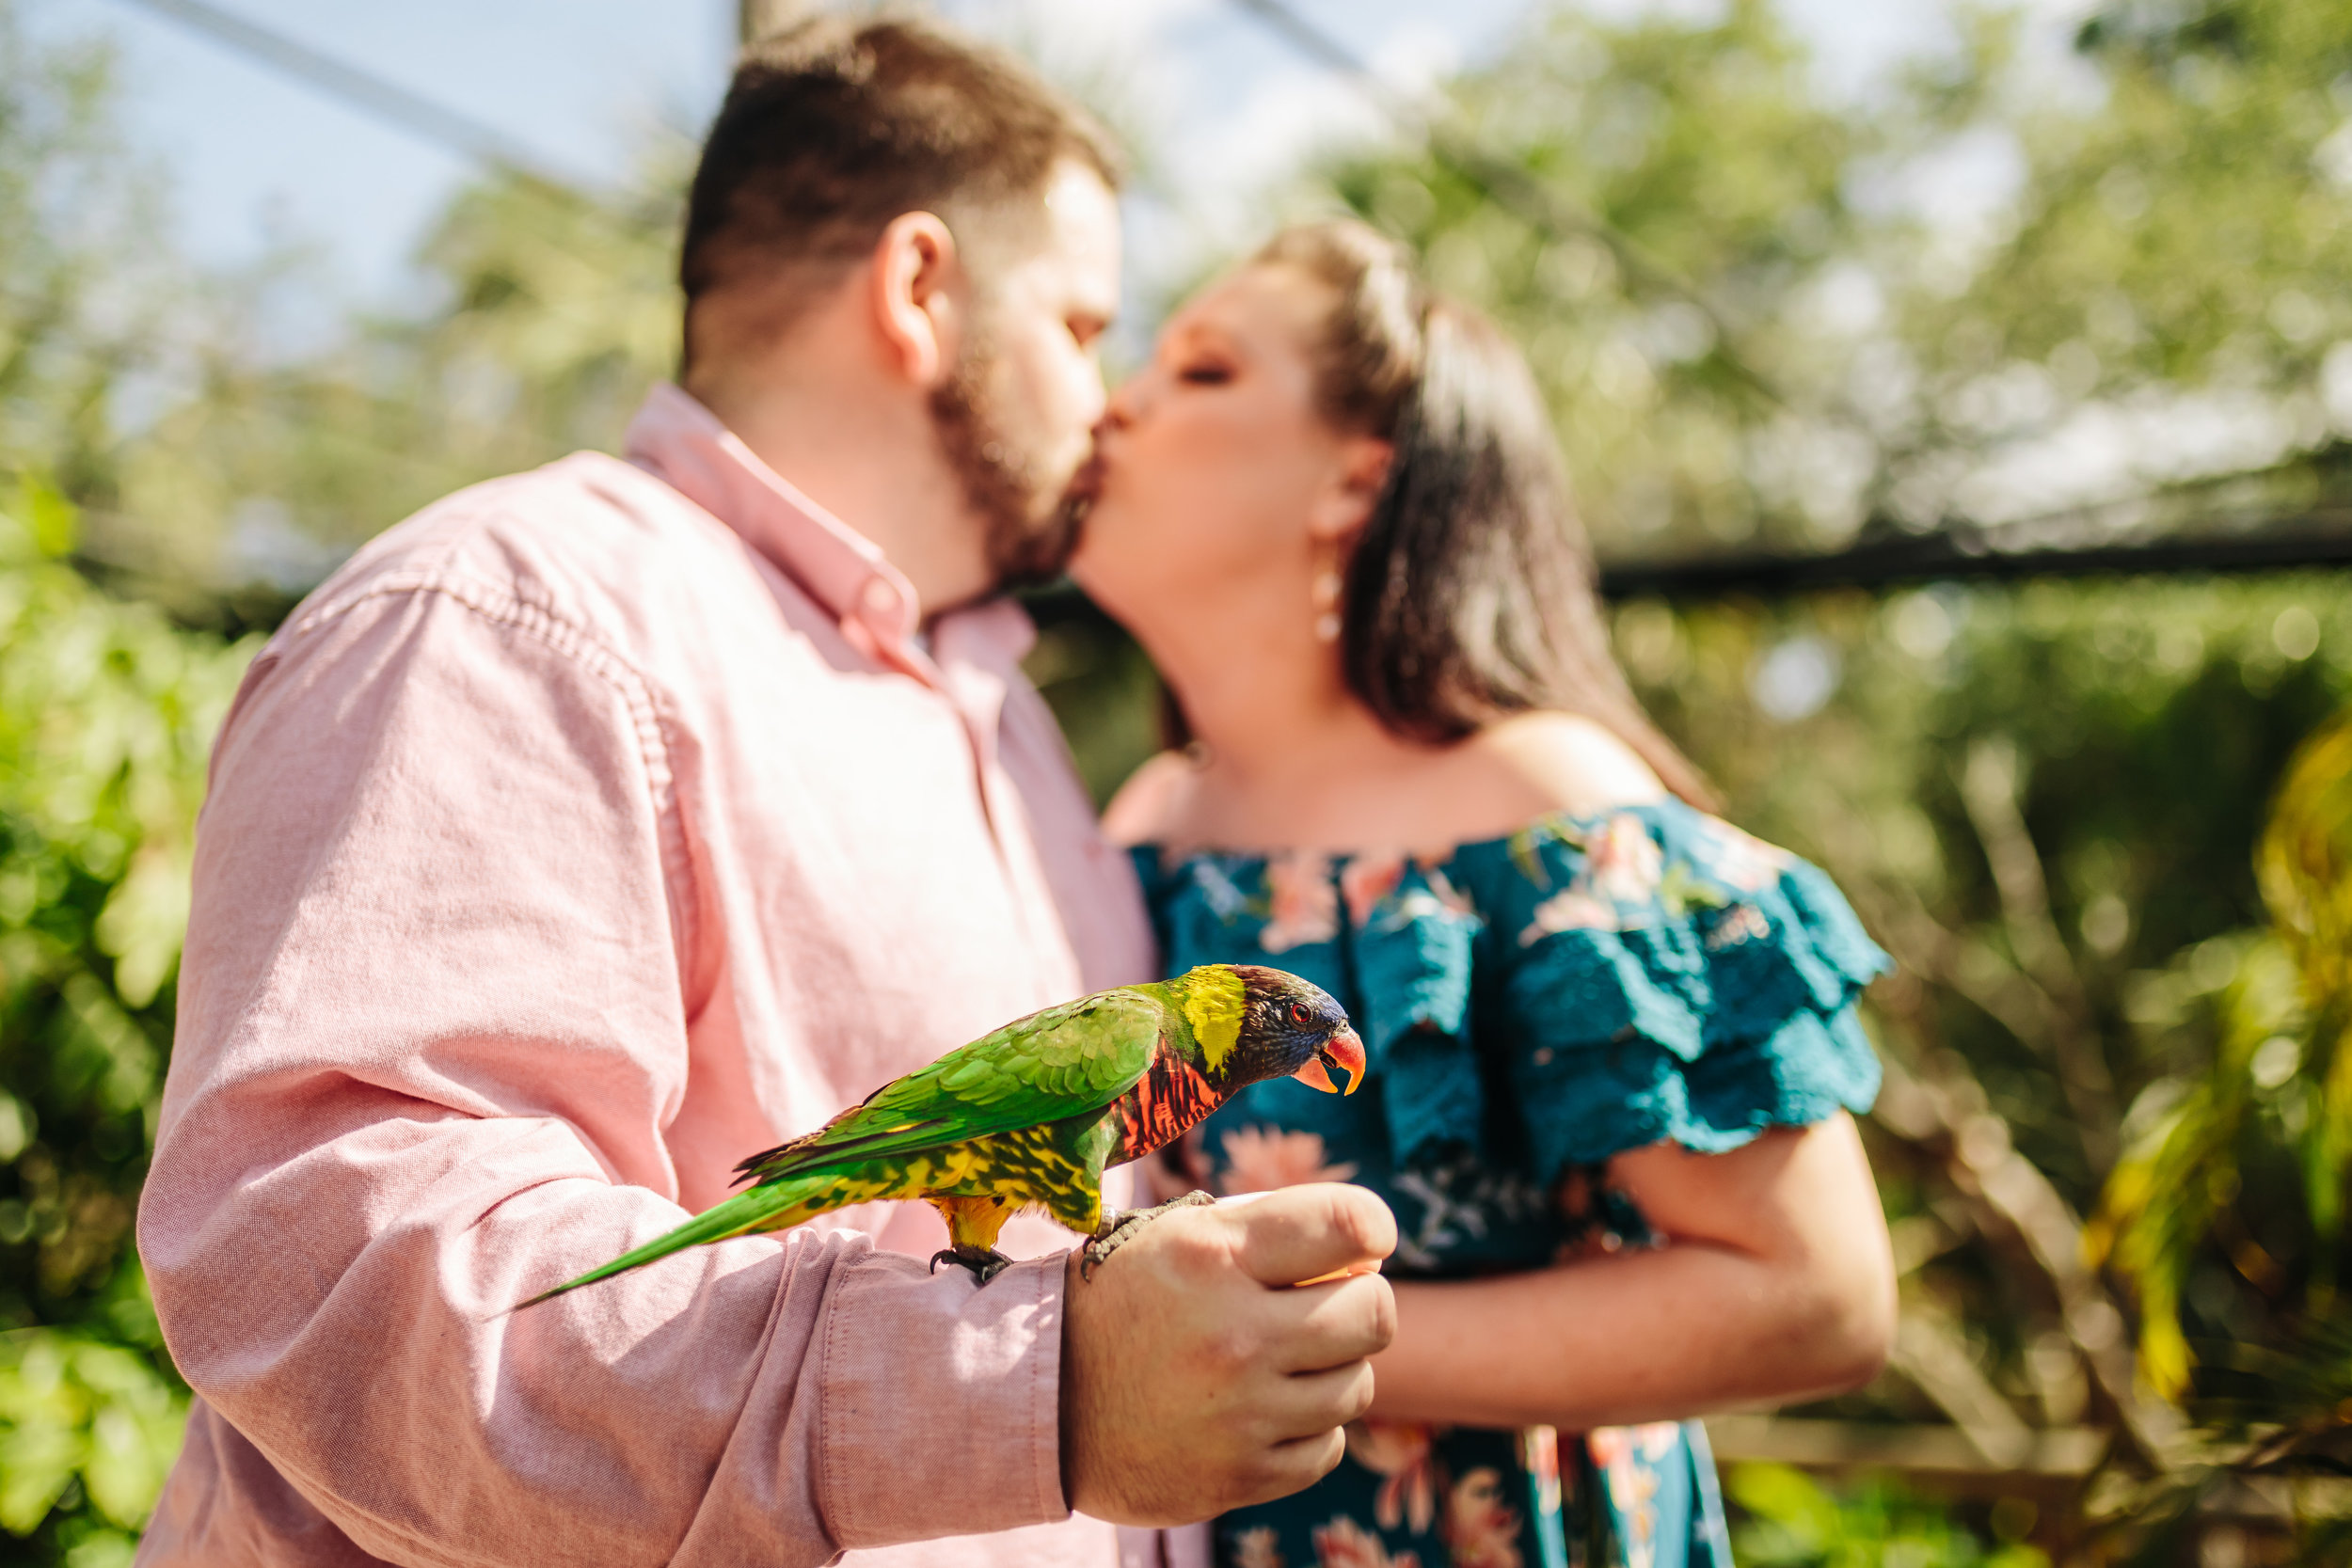 2018.05.01 Ashleigh and Nathan Brevard Zoo Engagement Session-93.jpg